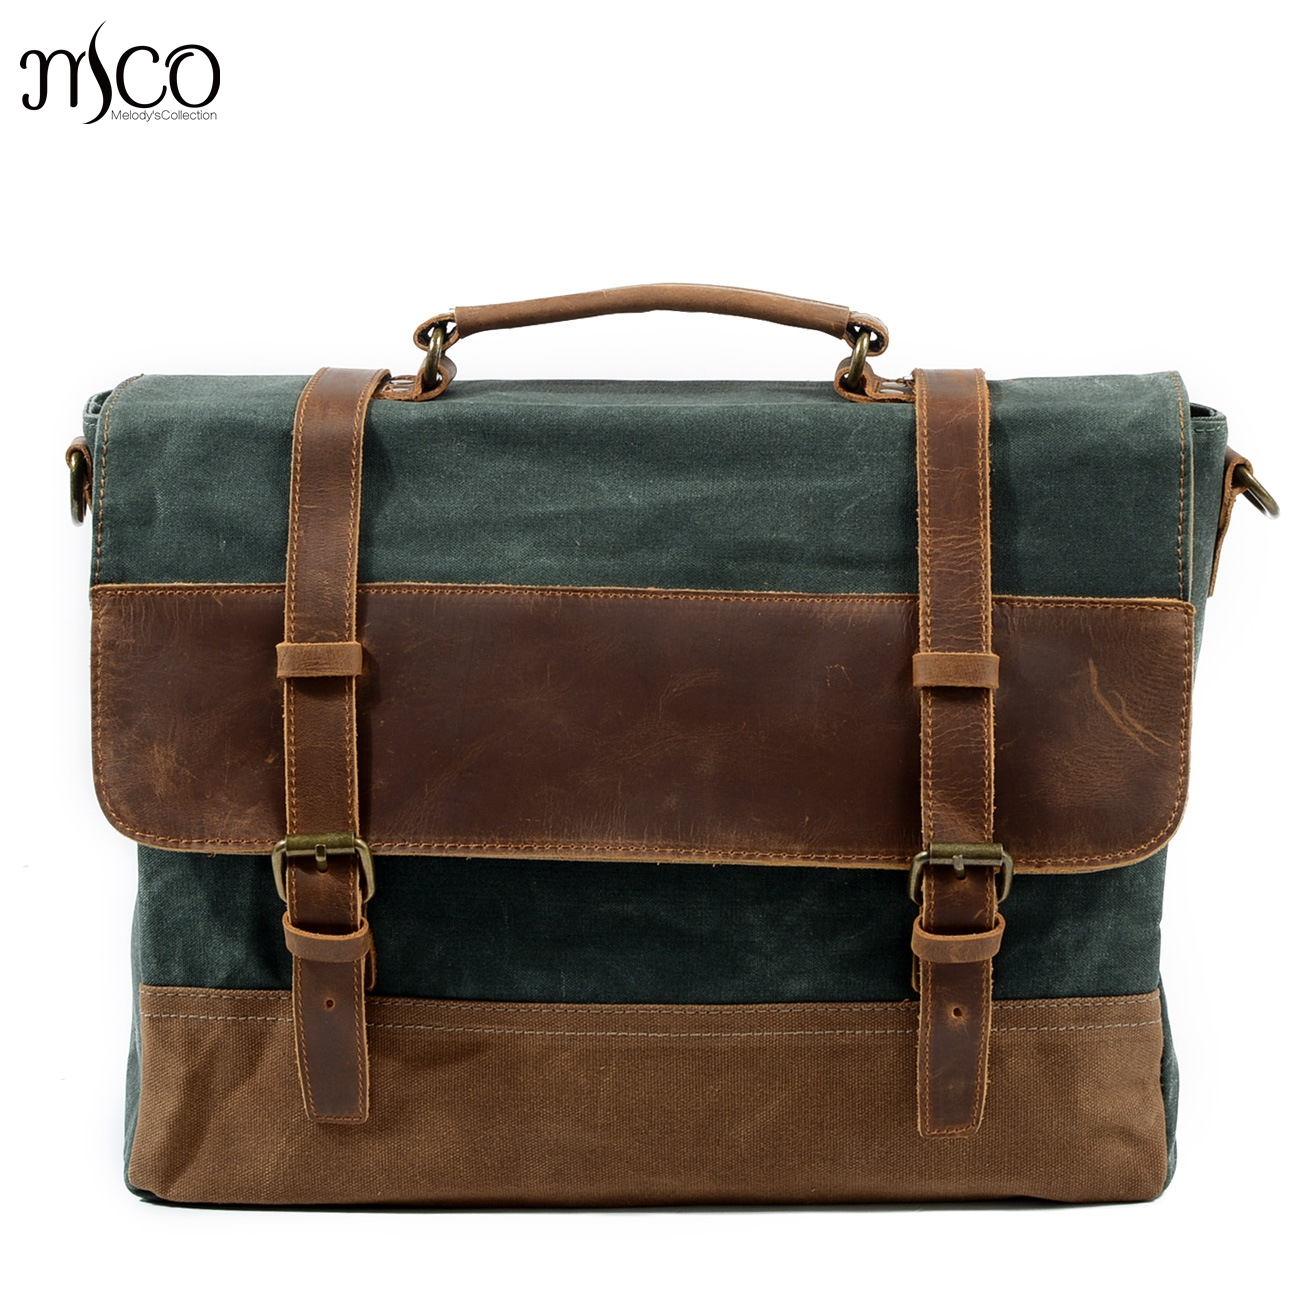 61ada9919356 Melodycollection Men Vintage Waxed Canvas messenger bag leather man travel  bags retro Business bag Briefcases messenger handbag-in Top-Handle Bags  from ...